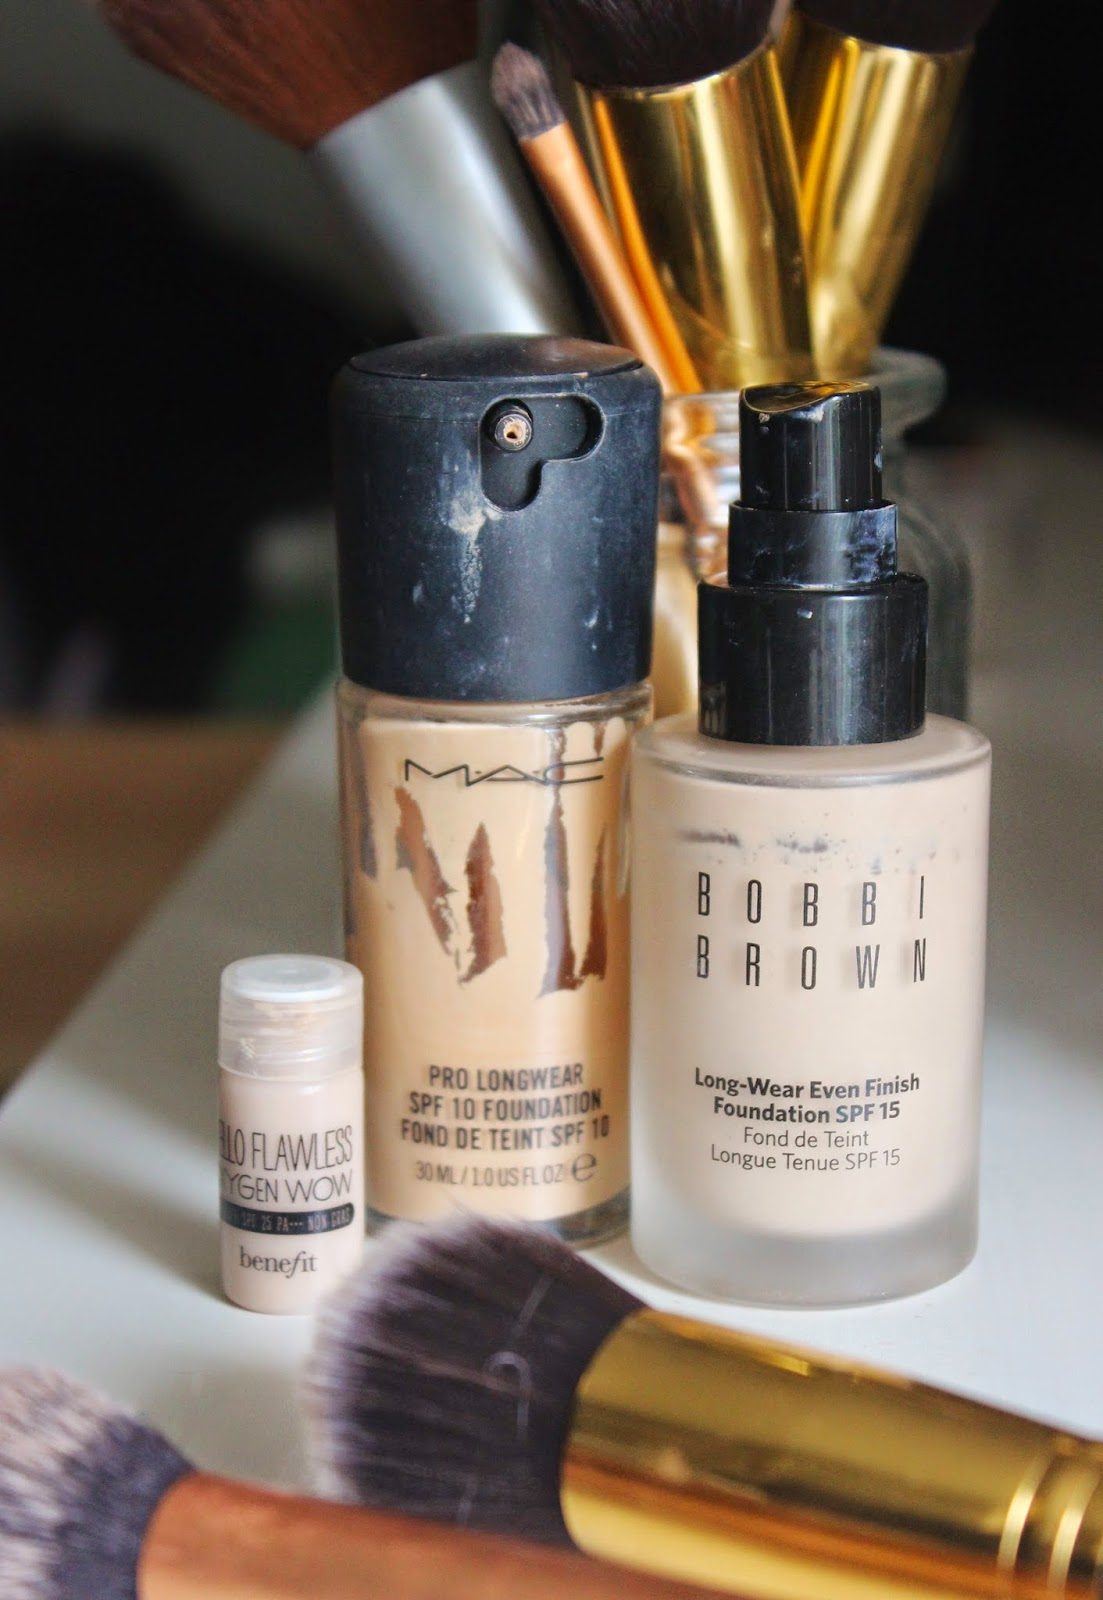 Foundation Collection featuring Mac Pro Longwear